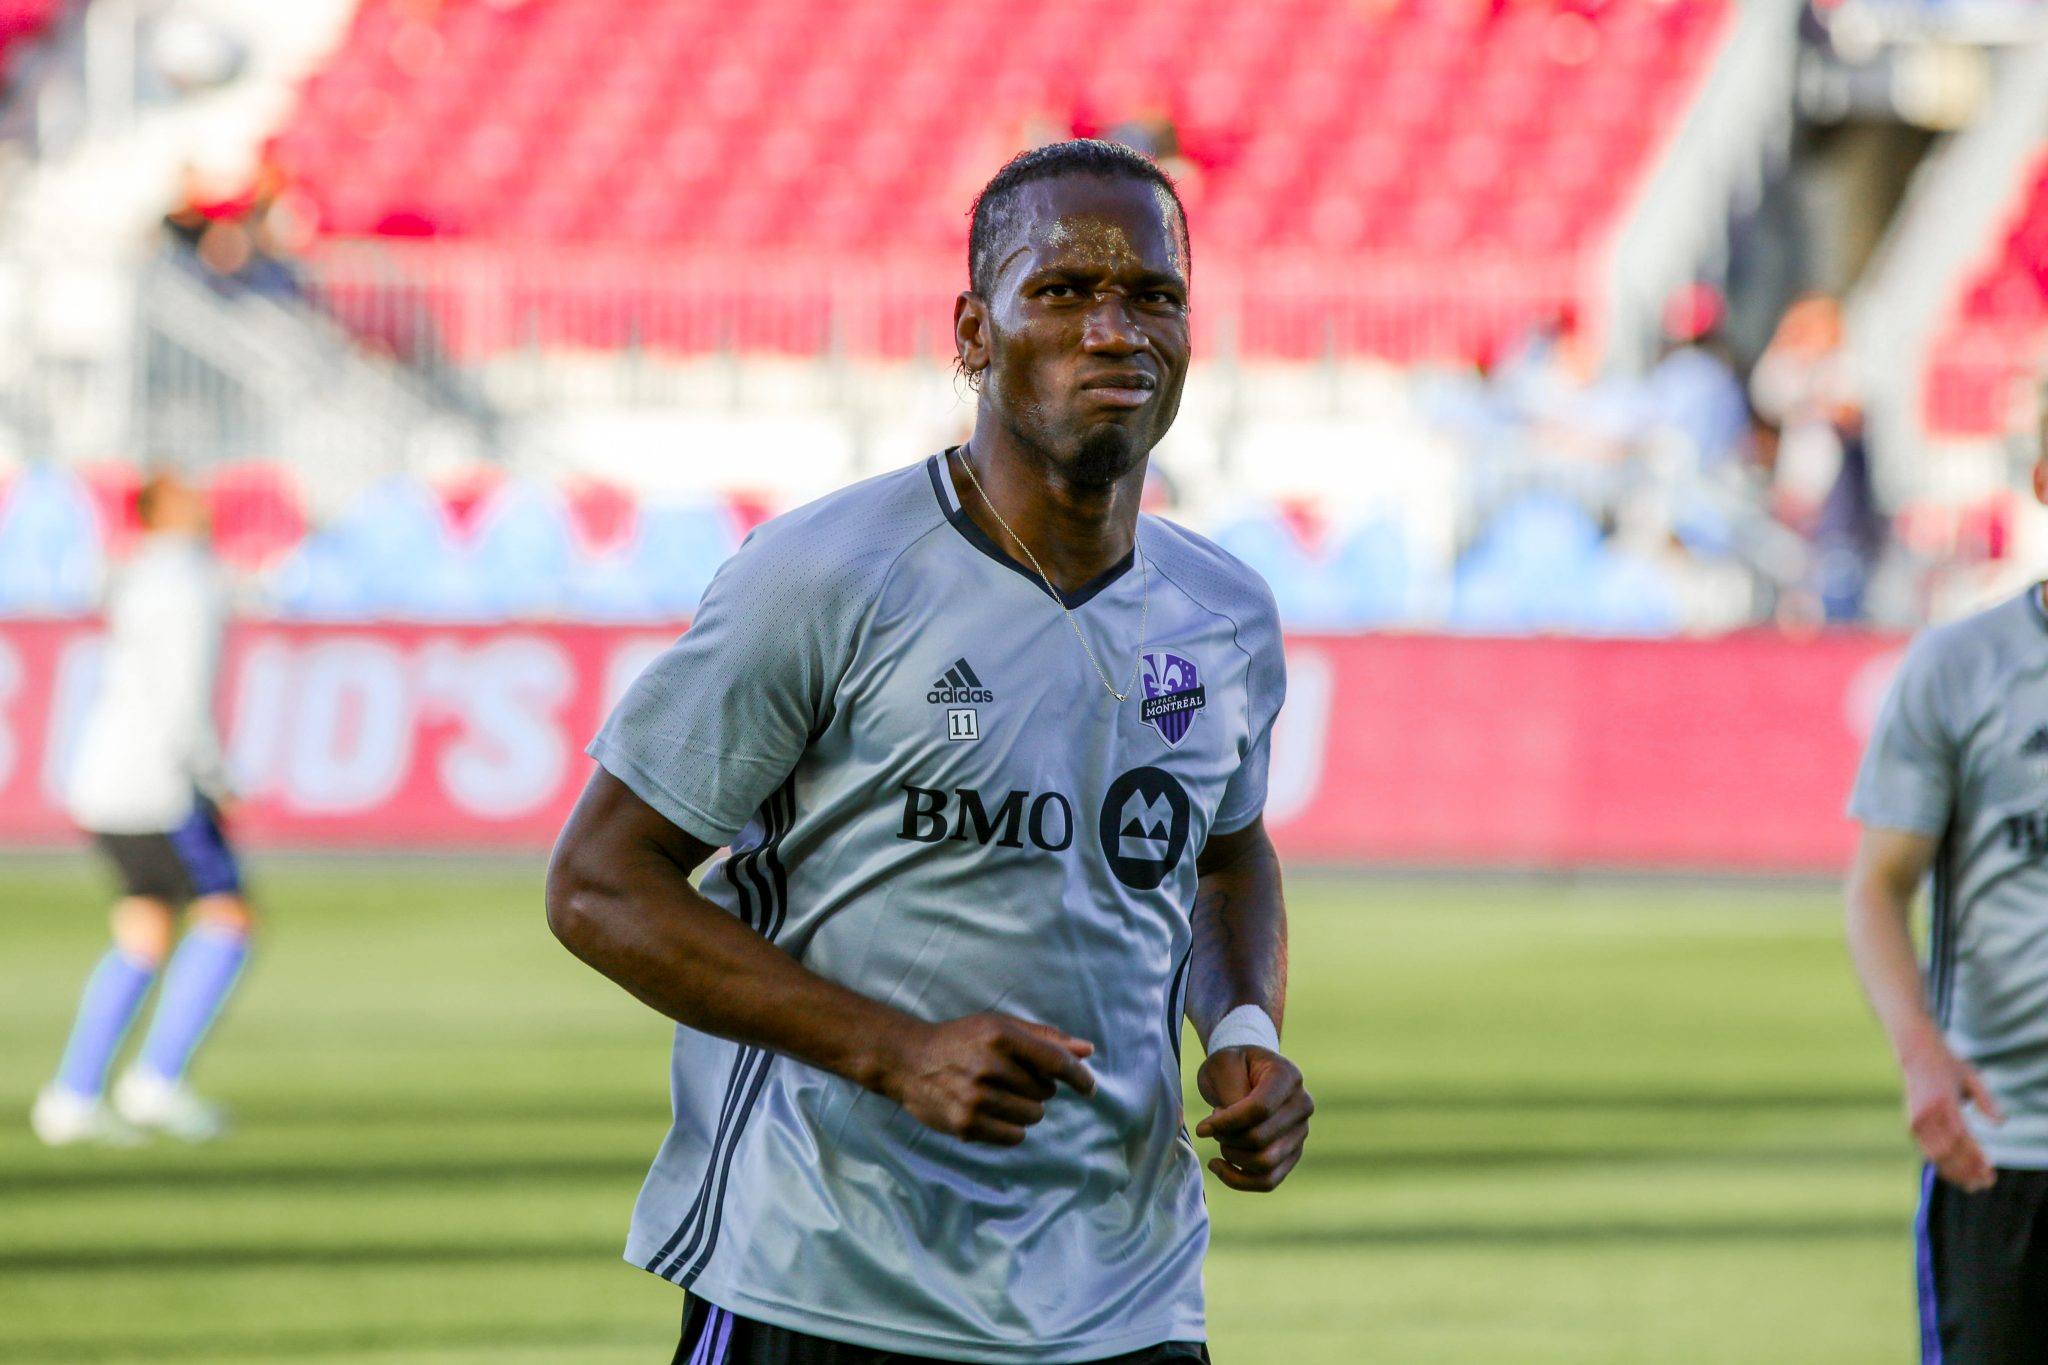 Montreal Impact & legend, Didier Drogba at BMO Field. Photo taken by Luke Galati